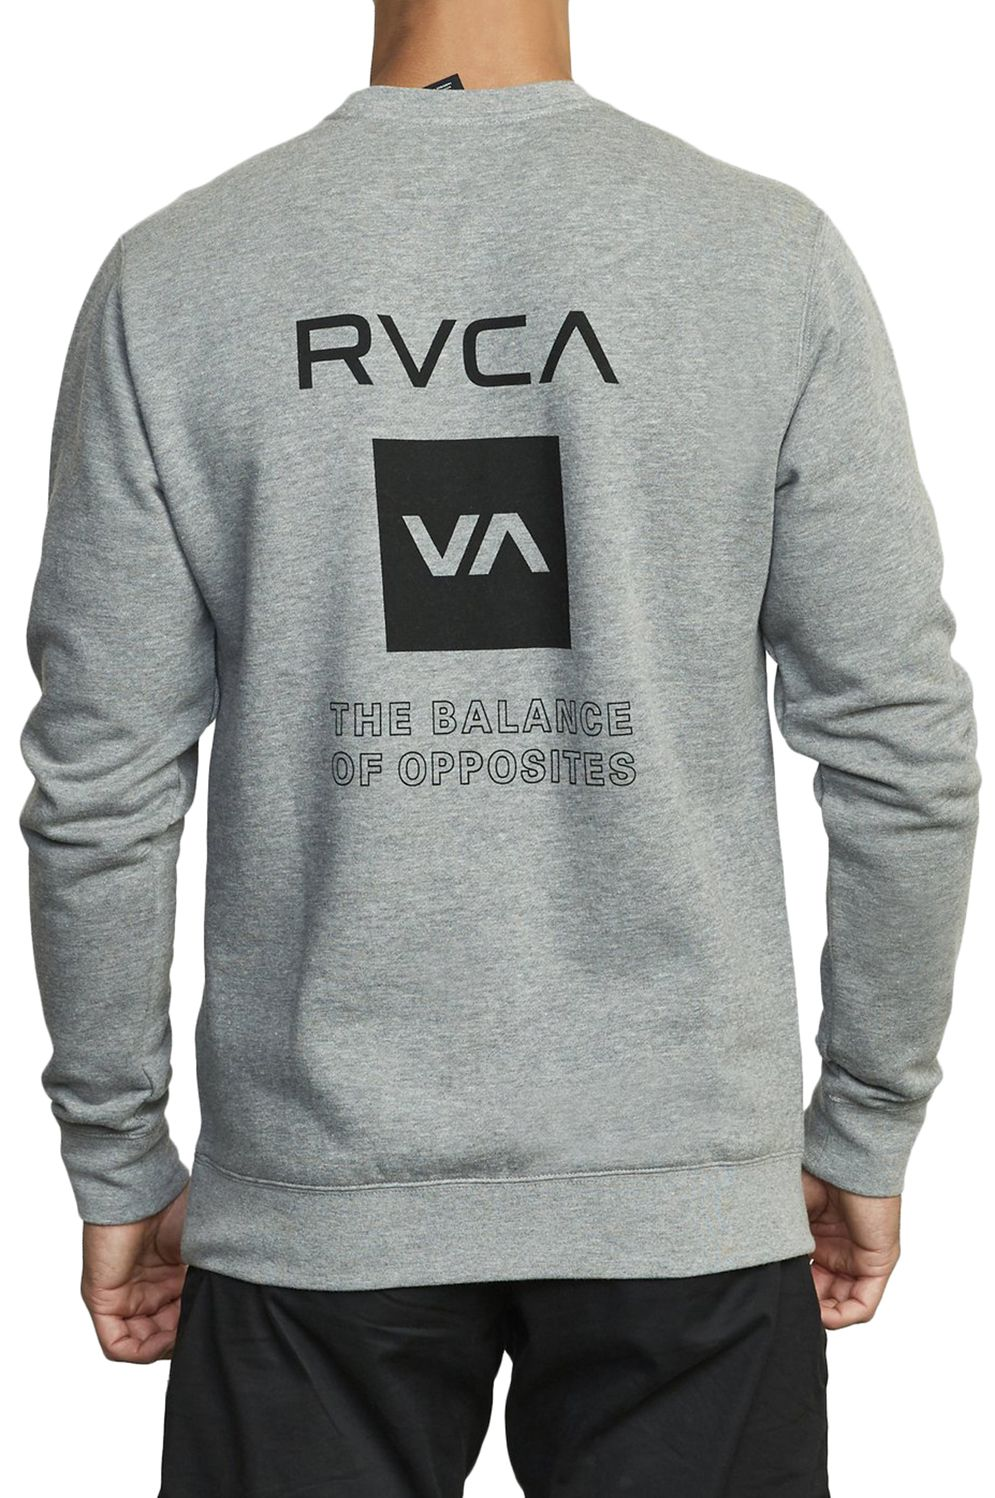 Sweat Basica RVCA SPORT GRAPHIC VA SPORT Heather Grey